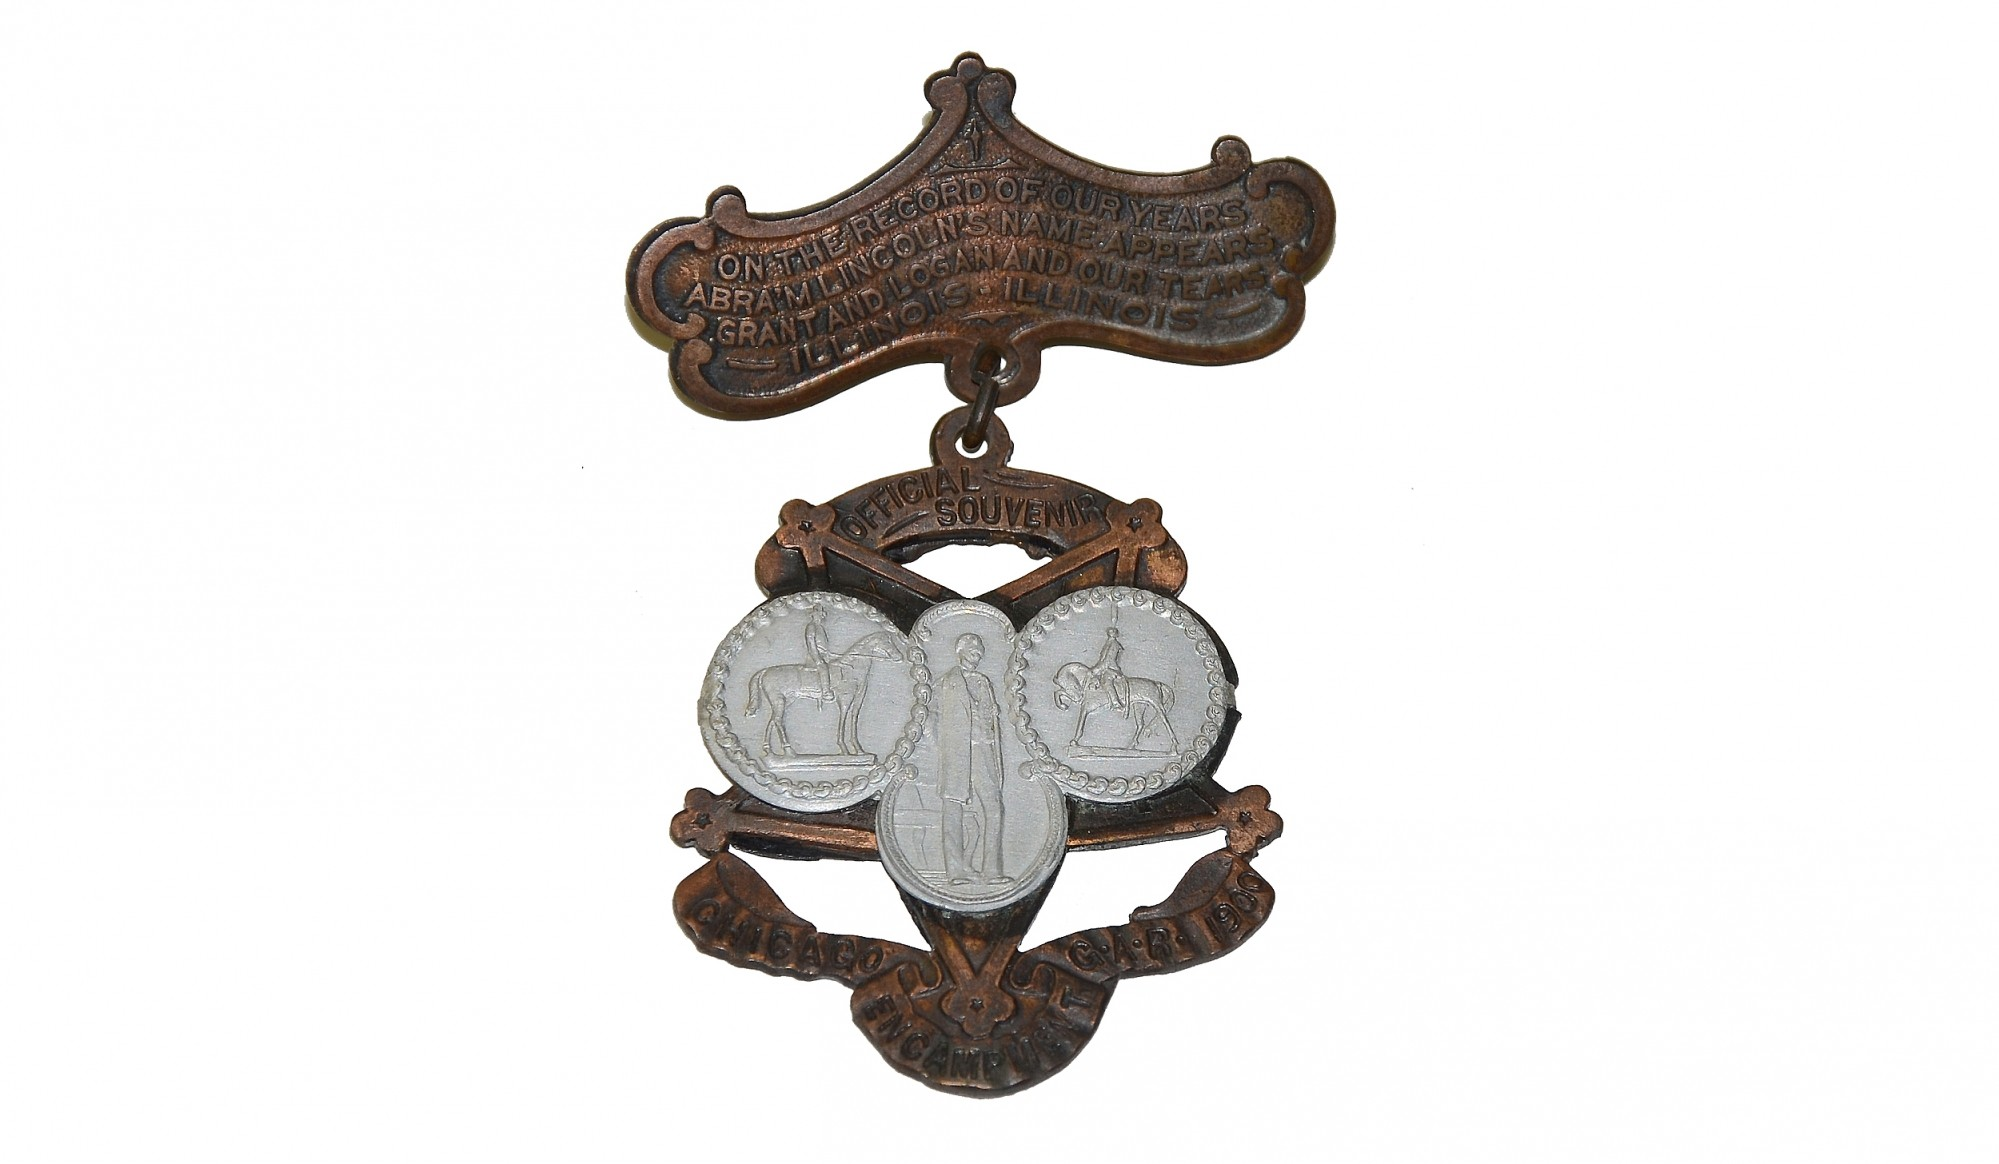 1900 GAR BADGE MADE OF CAPTURED CANNON